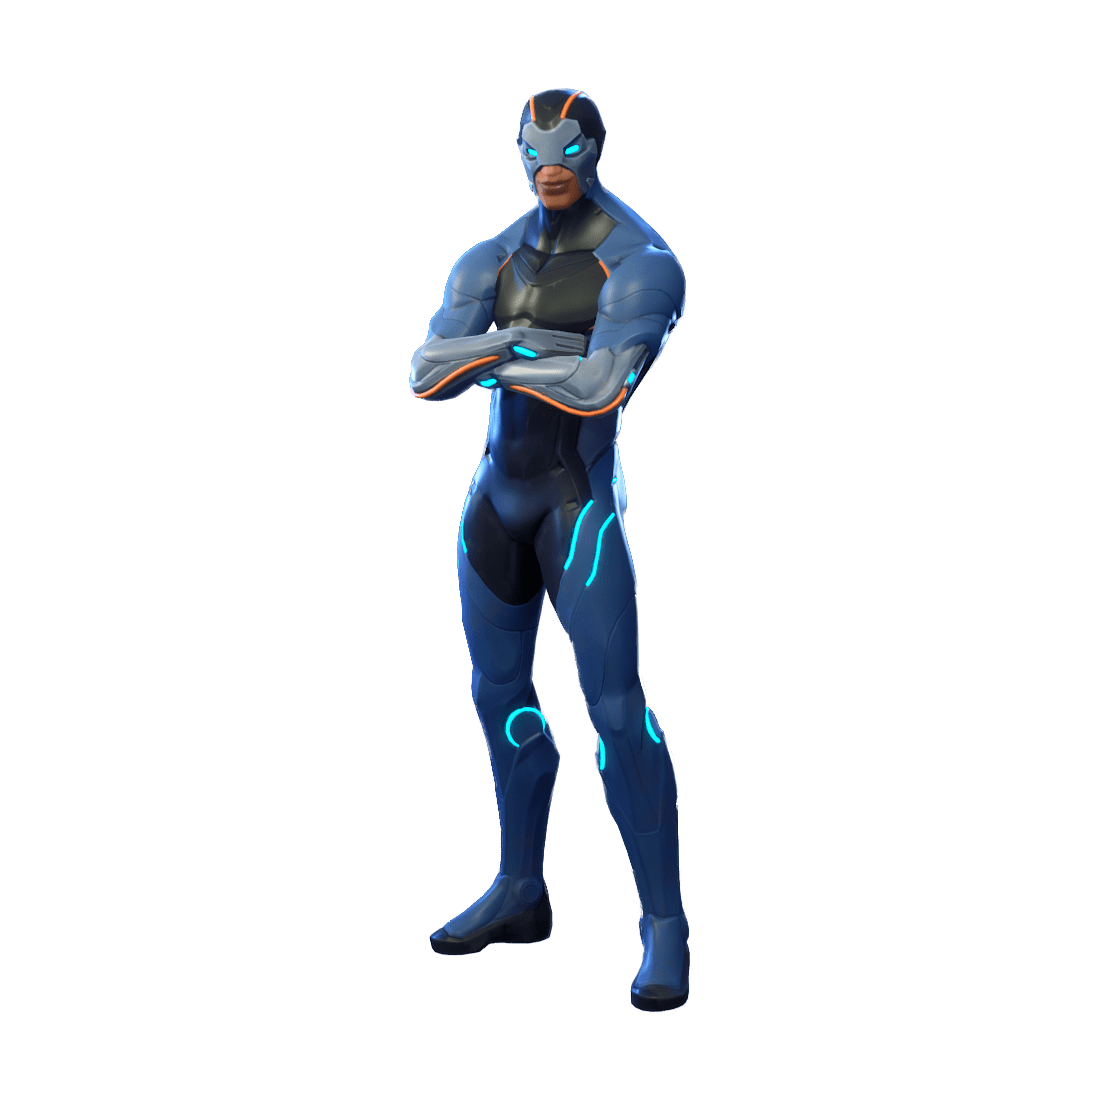 Fortnite Carbide | Outfits - Fortnite Skins